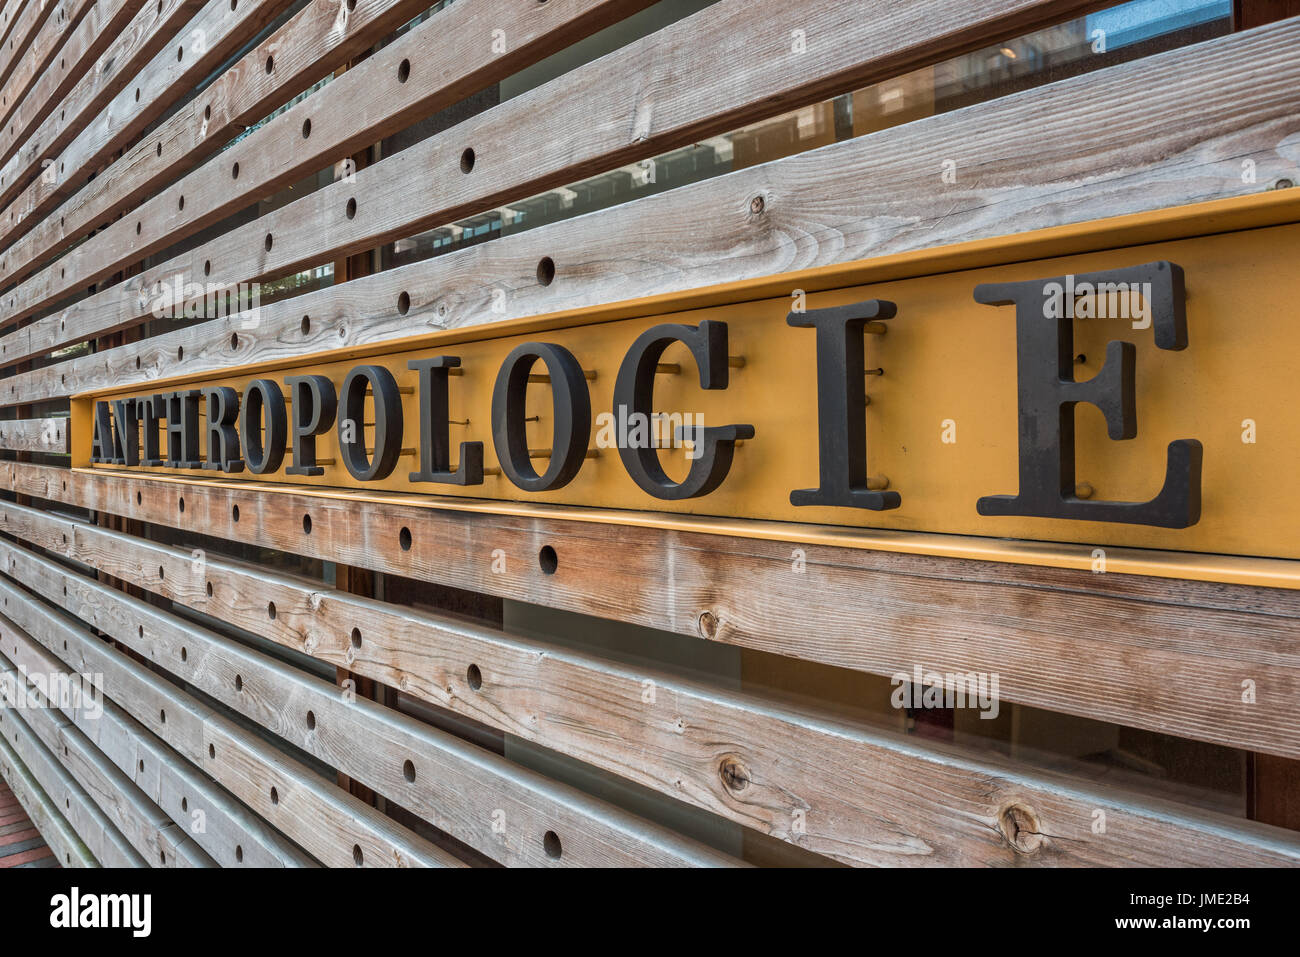 Anthropologie retail store sign Stock Photo: 150285272 - Alamy